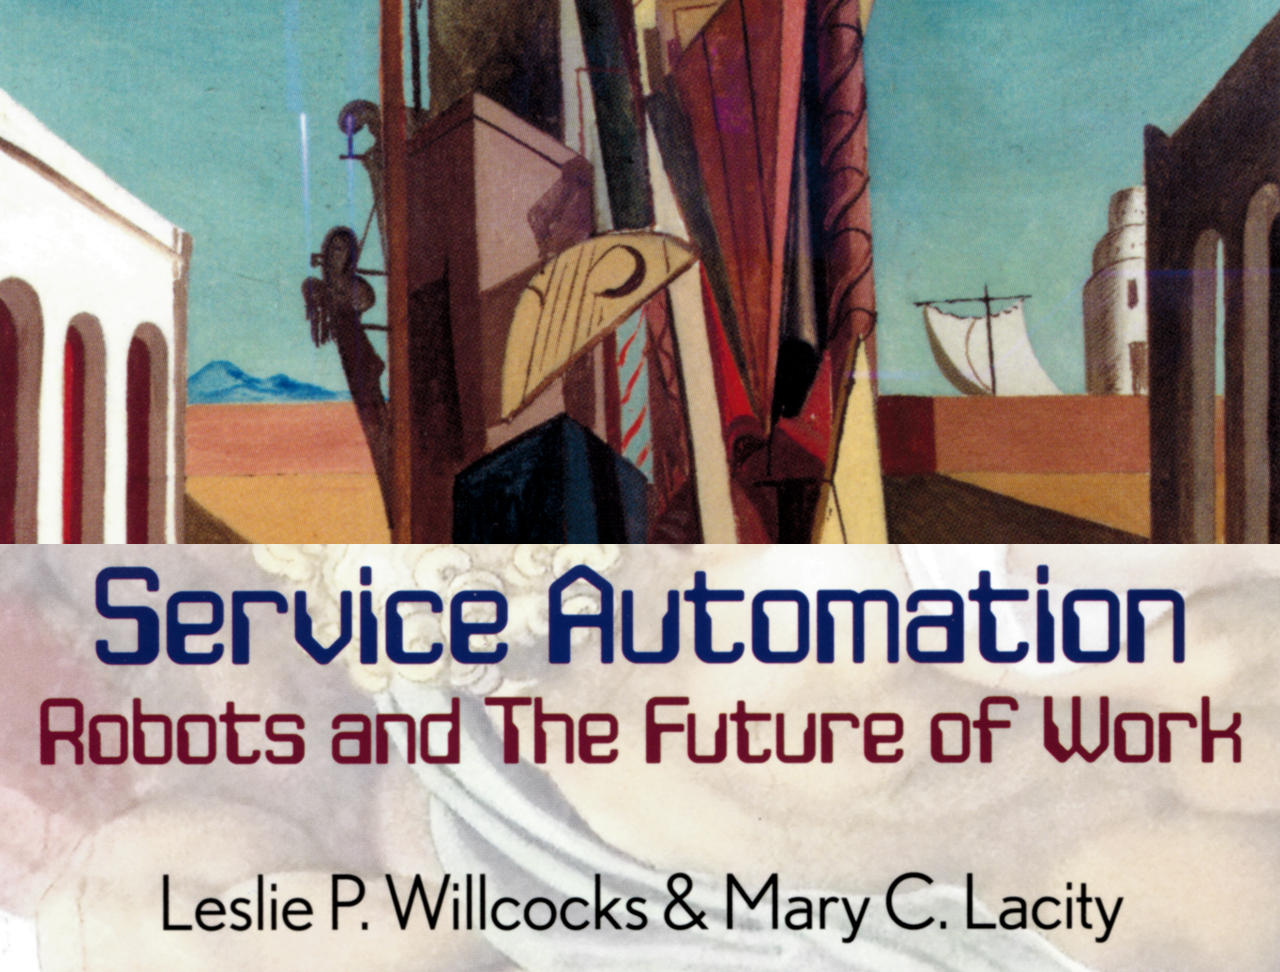 Warto mieć w biblioteczce: Service Automation - Robots and the Future of Work